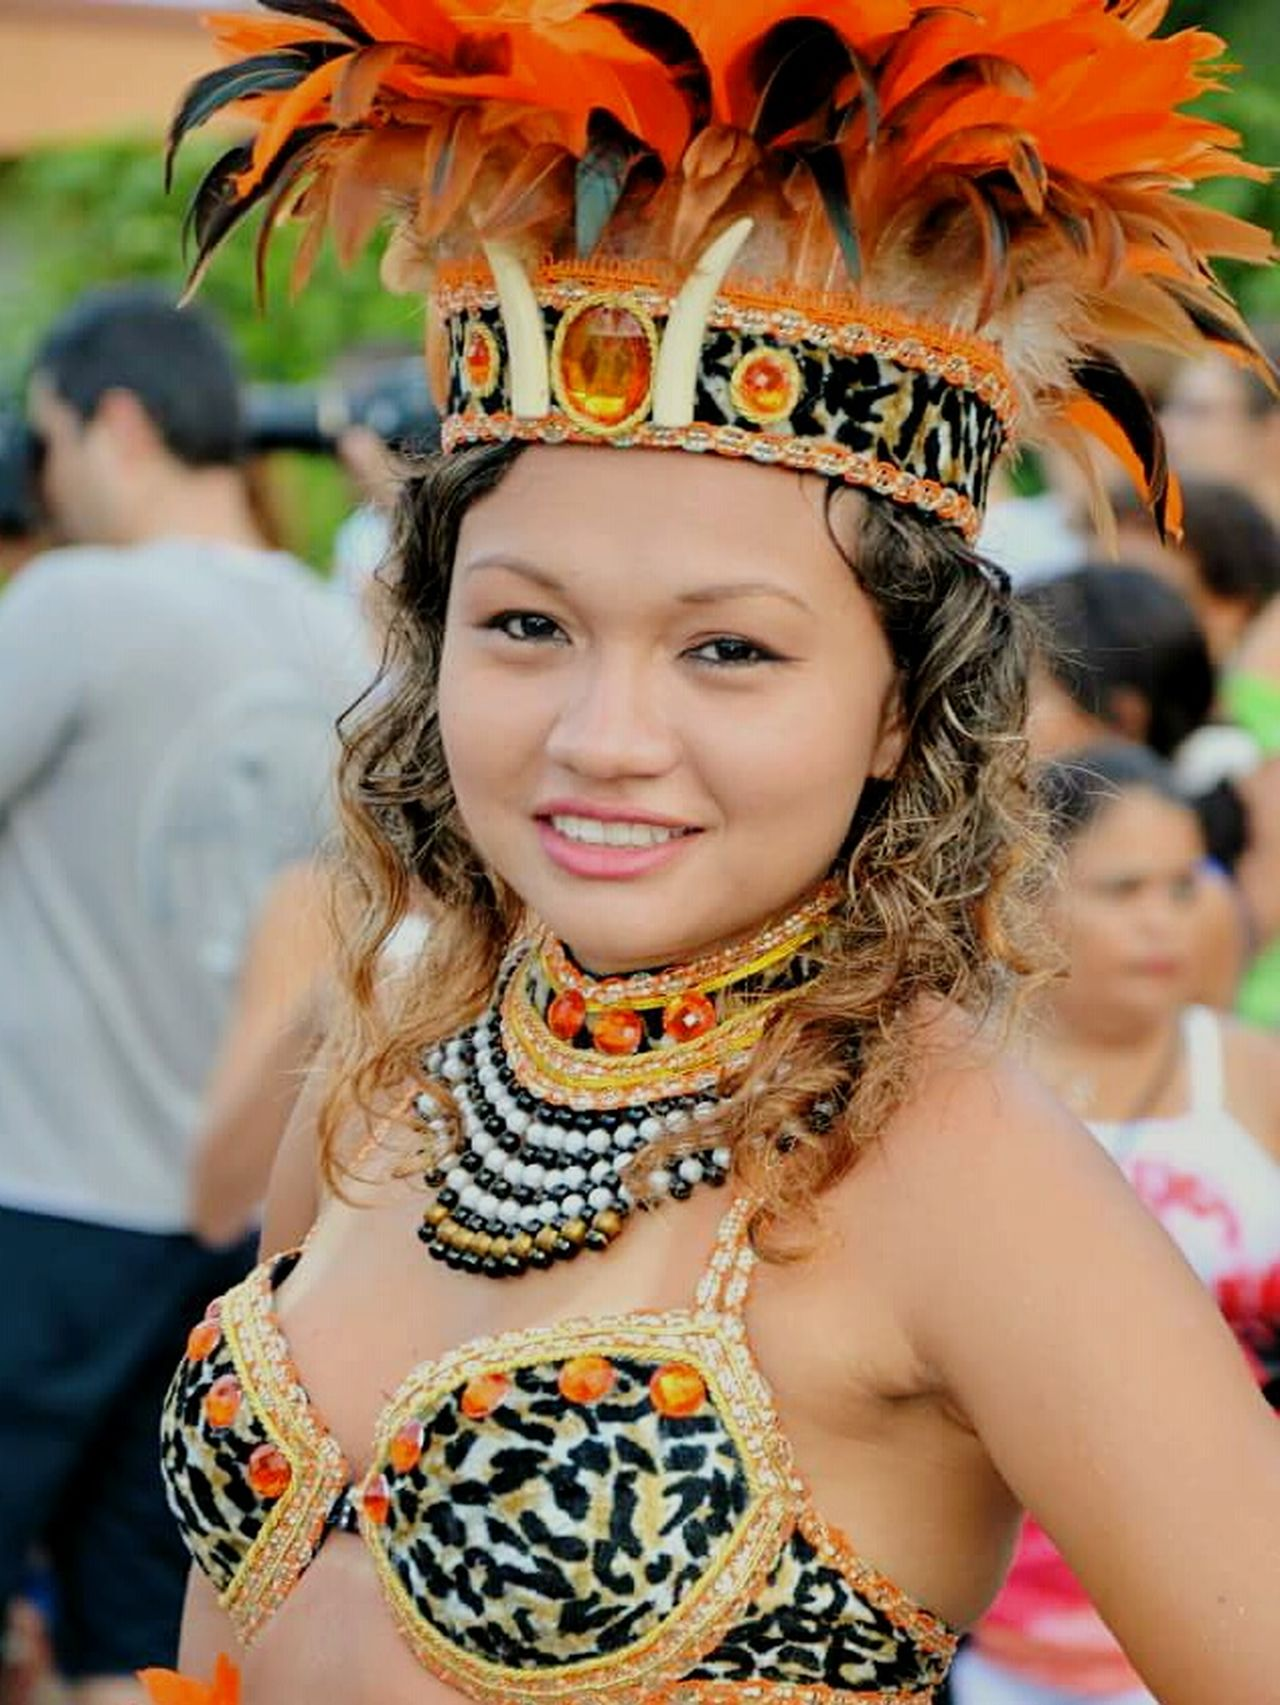 Arts Culture And Entertainment Traditional Clothing Dancer Portrait Beautiful People Headdress Beauty Performance Dancing Performing Arts Event Only Women Cultures Smiling Lifestyles Adult Skill  Women Ceremony Looking At Camera Young Adult